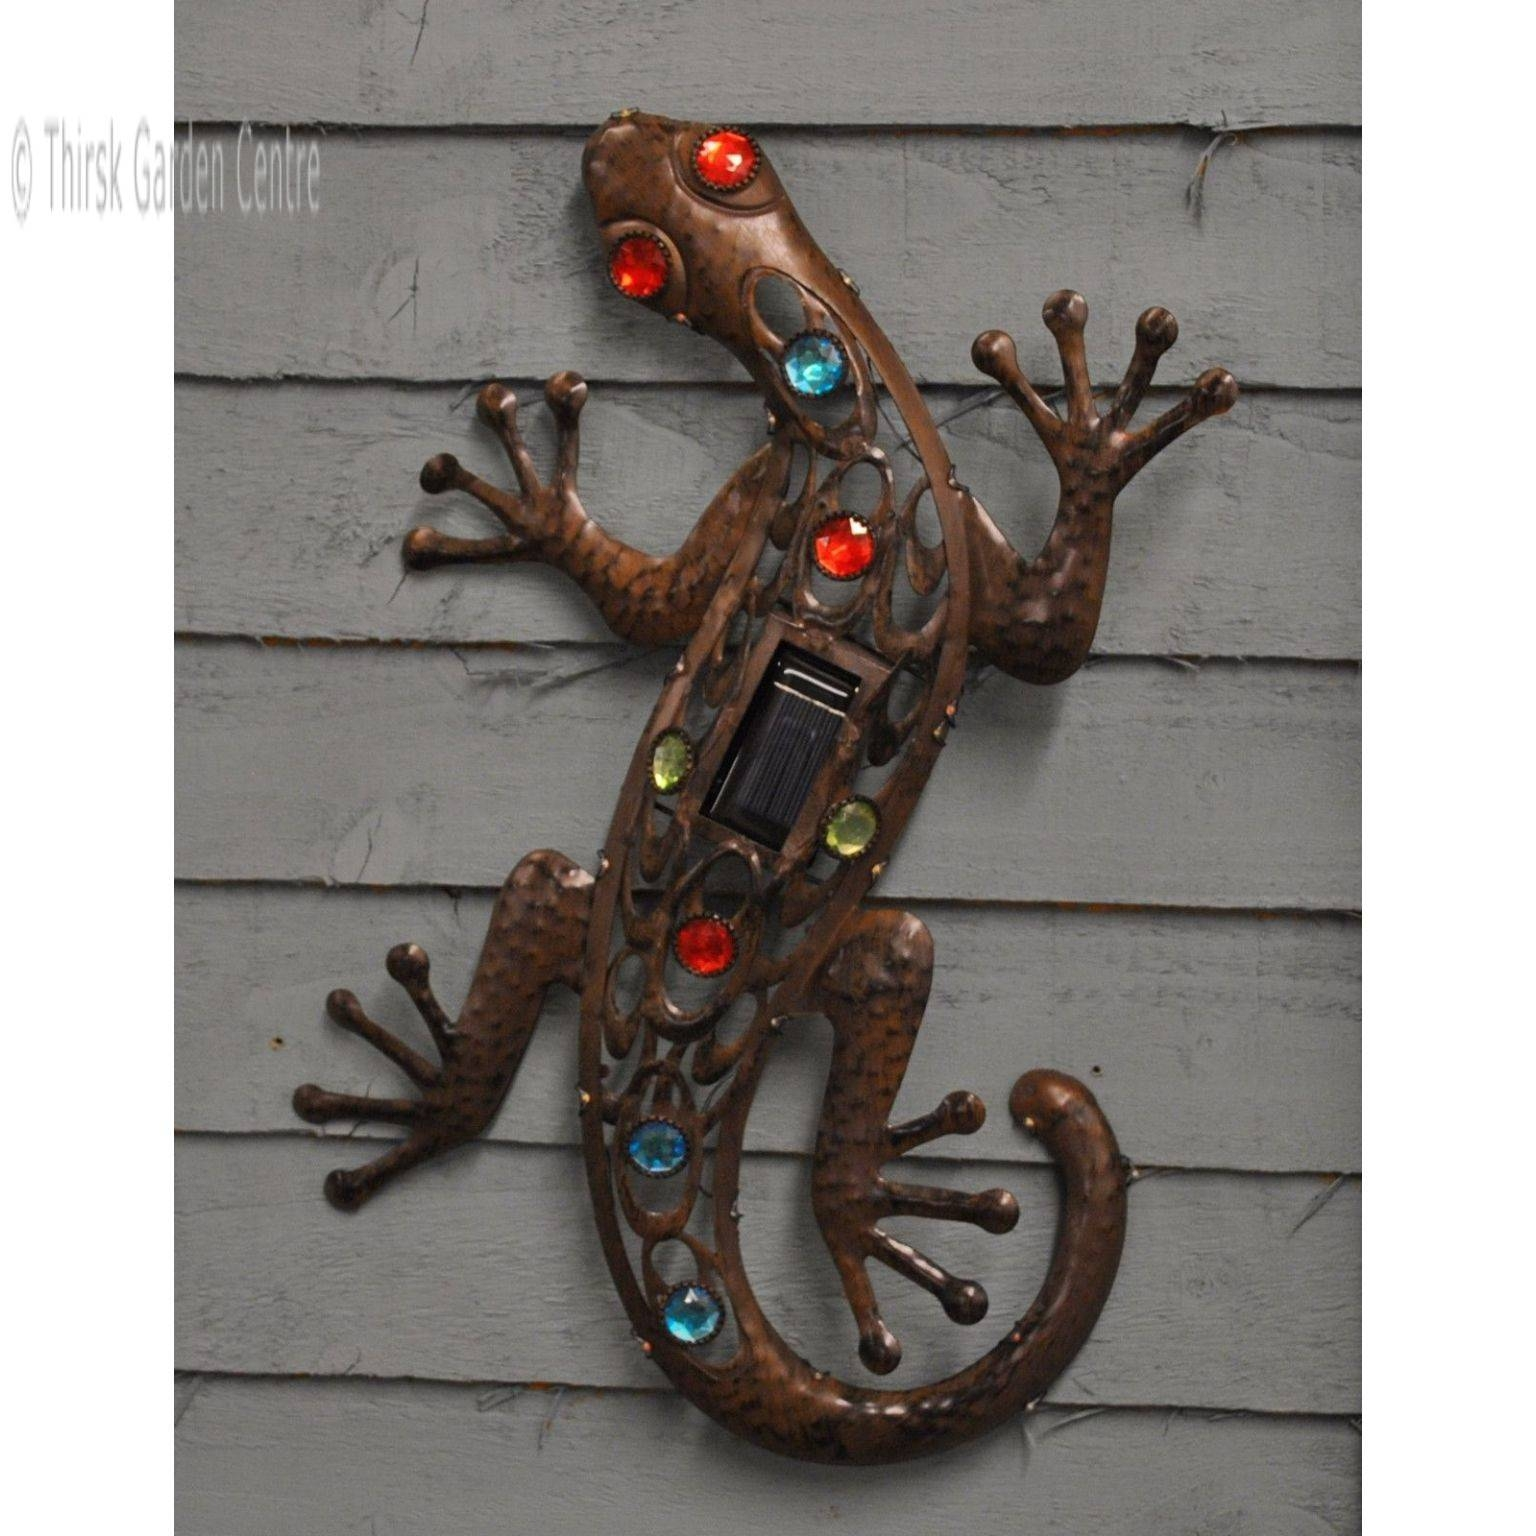 Solar Led Gecko Metal Wall Art – Solar Lights – Thirsk Garden Centre With Regard To Most Recently Released Gecko Metal Wall Art (View 16 of 20)